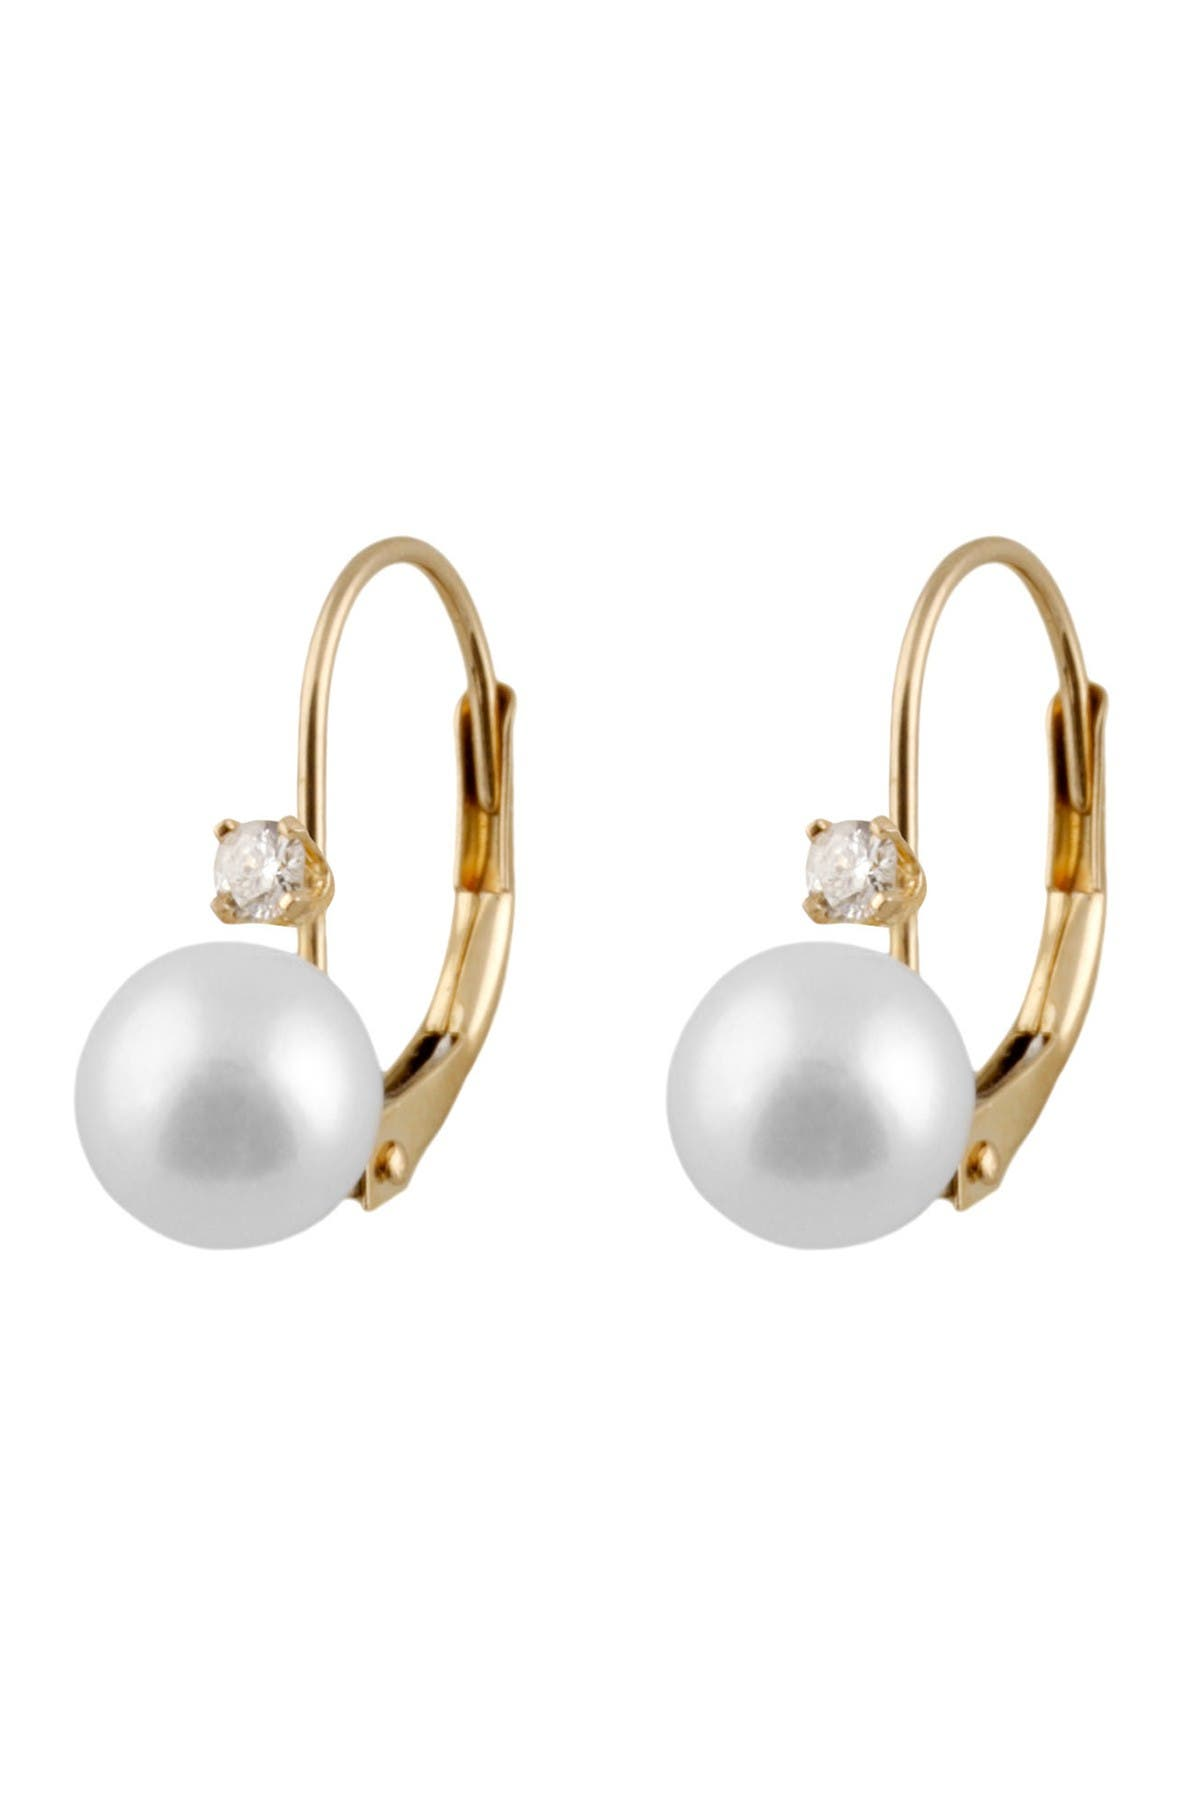 Image of Splendid Pearls 14K Gold Freshwater Pearl & Diamond Leverback Earrings - 0.10 ctw